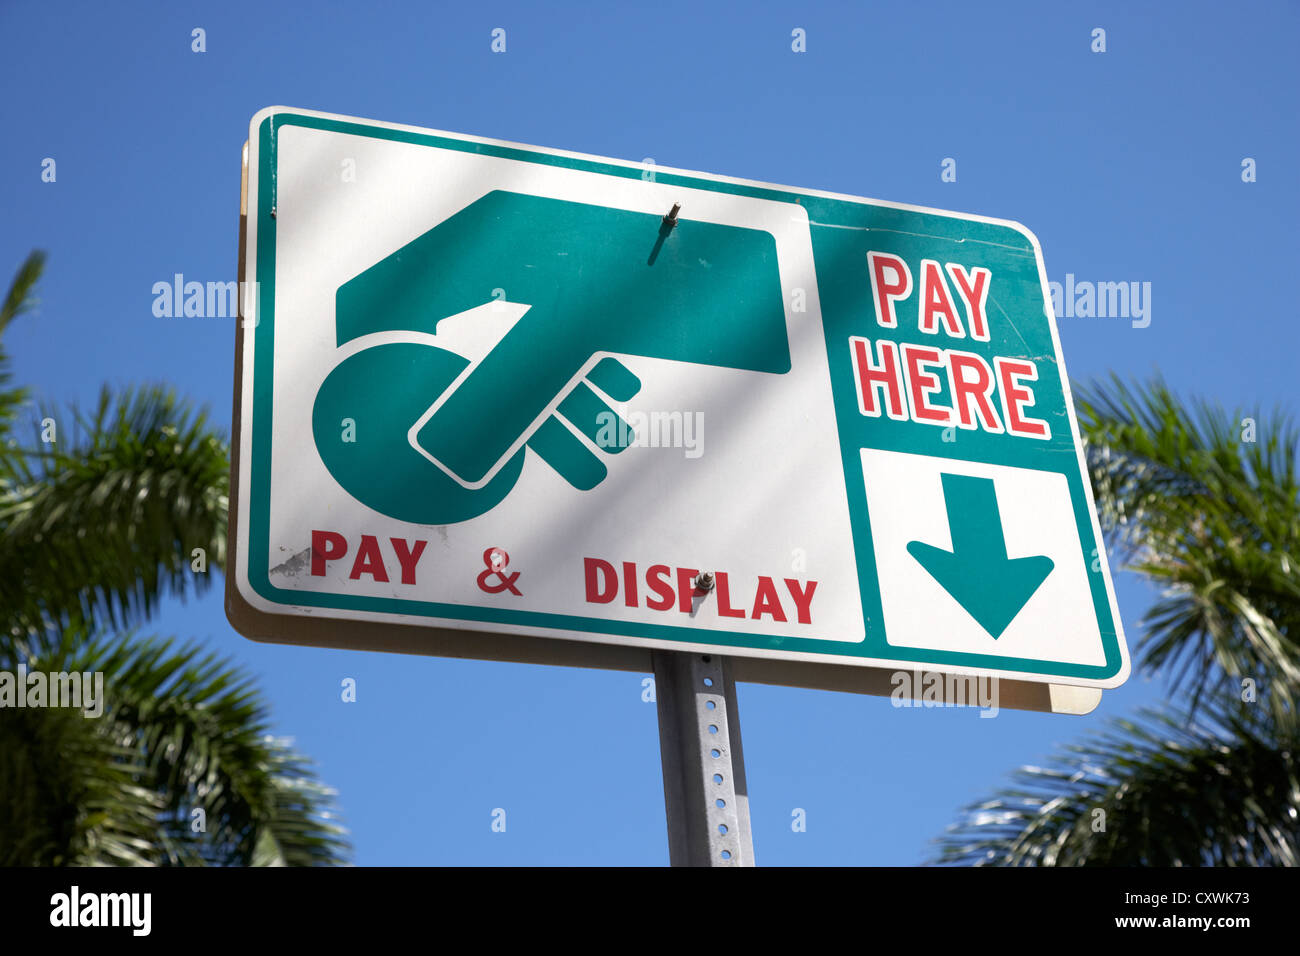 pay and display pay here sign in miami south beach florida usa - Stock Image